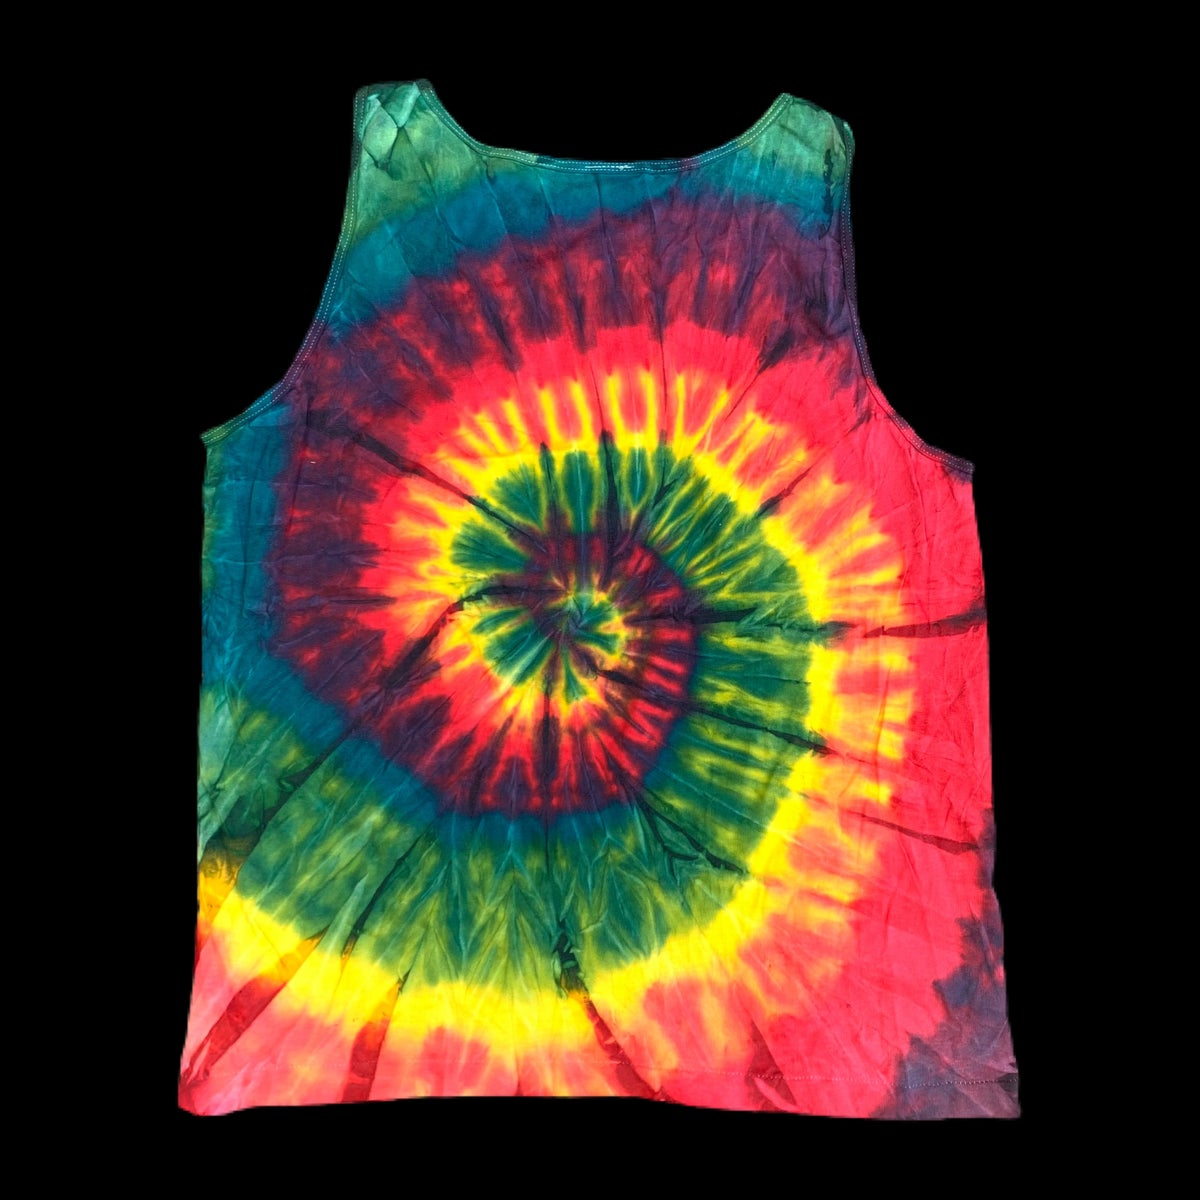 Original Vintage Grateful Dead 1992 Lithuania Fitzy's Embroidered Team Tank Top!! X-Large!